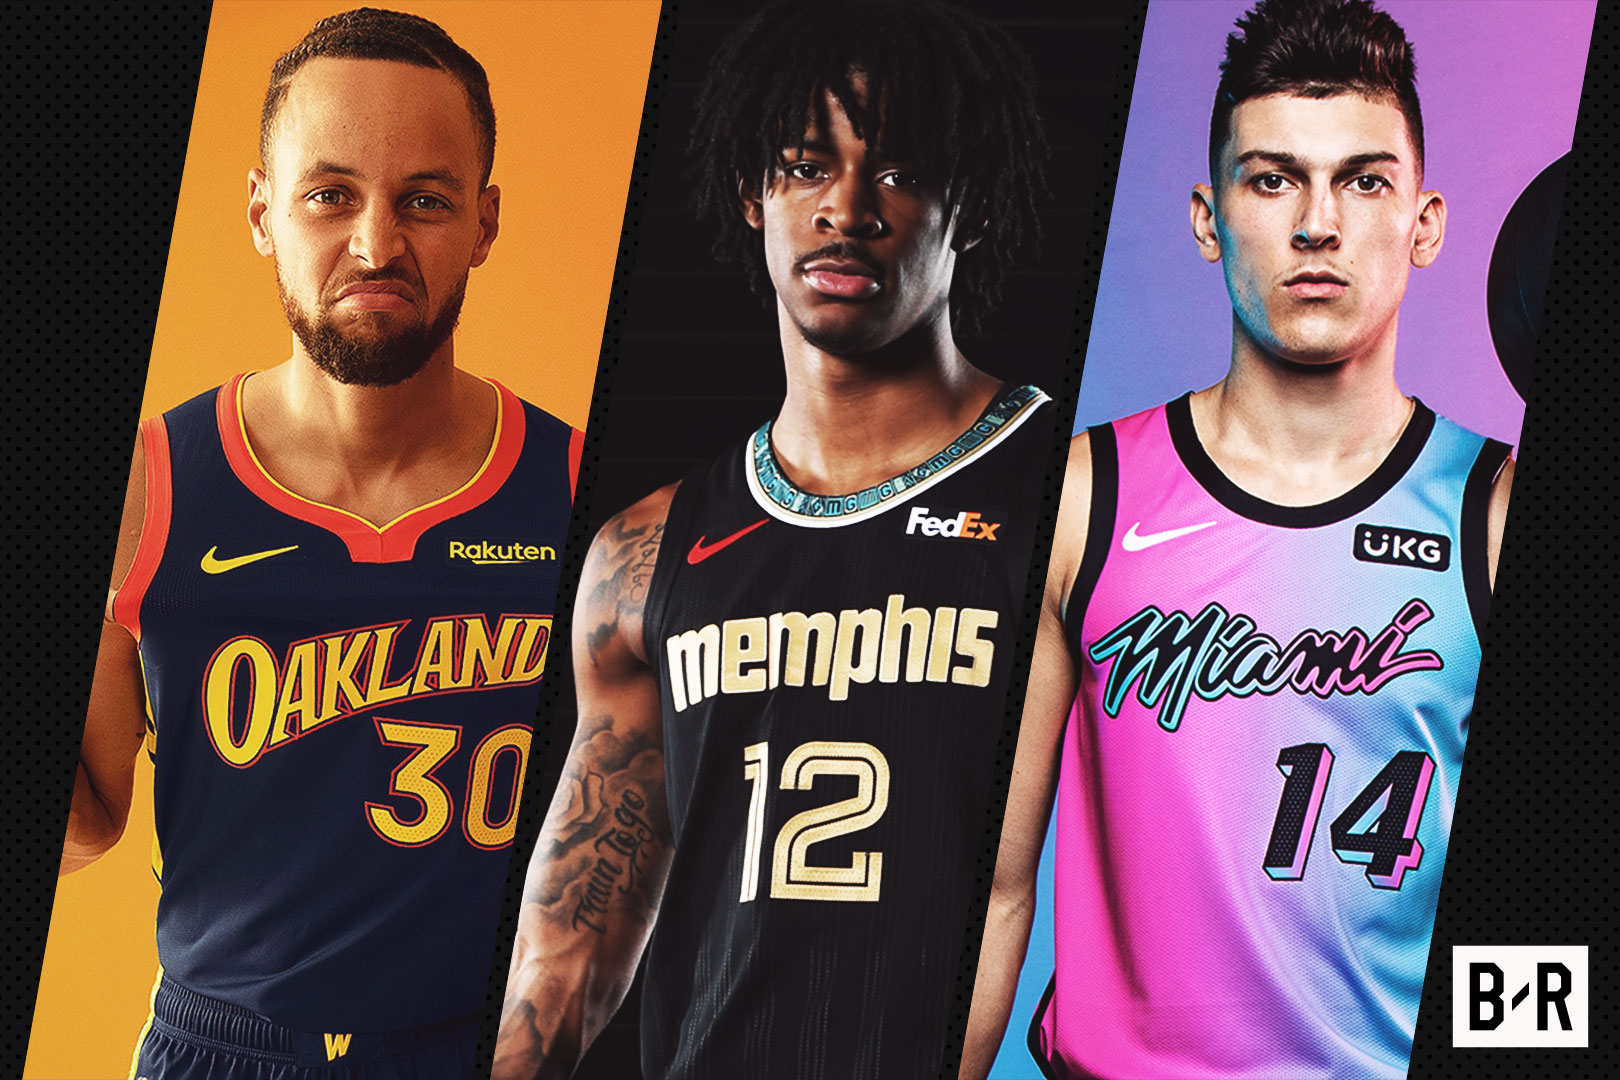 Ranking Every Nba Team S 2021 City Edition Jersey Bleacher Report Latest News Videos And Highlights